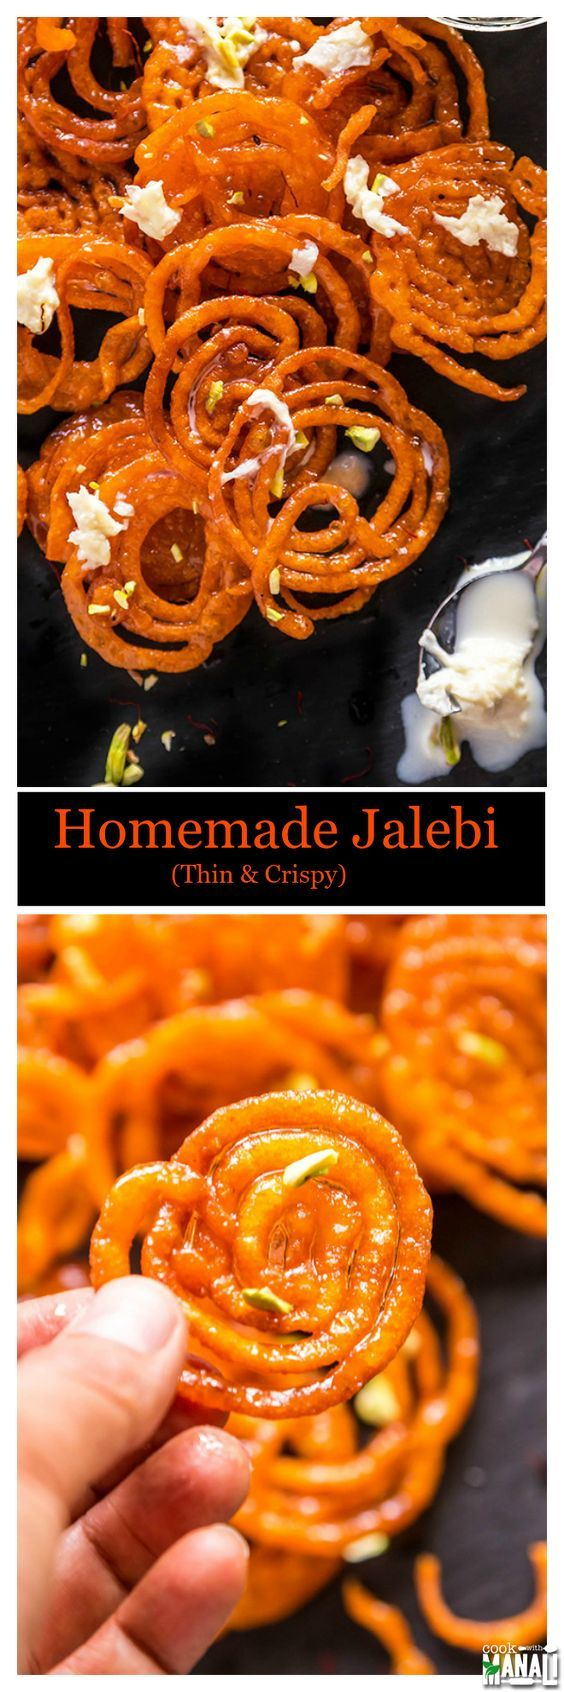 Crispy Homemade Jalebi - Traditional spiral shaped Indian sweet made with flour and dipped in sugar syrup for a special treat! Find the recipe on www.cookwithmanali.com